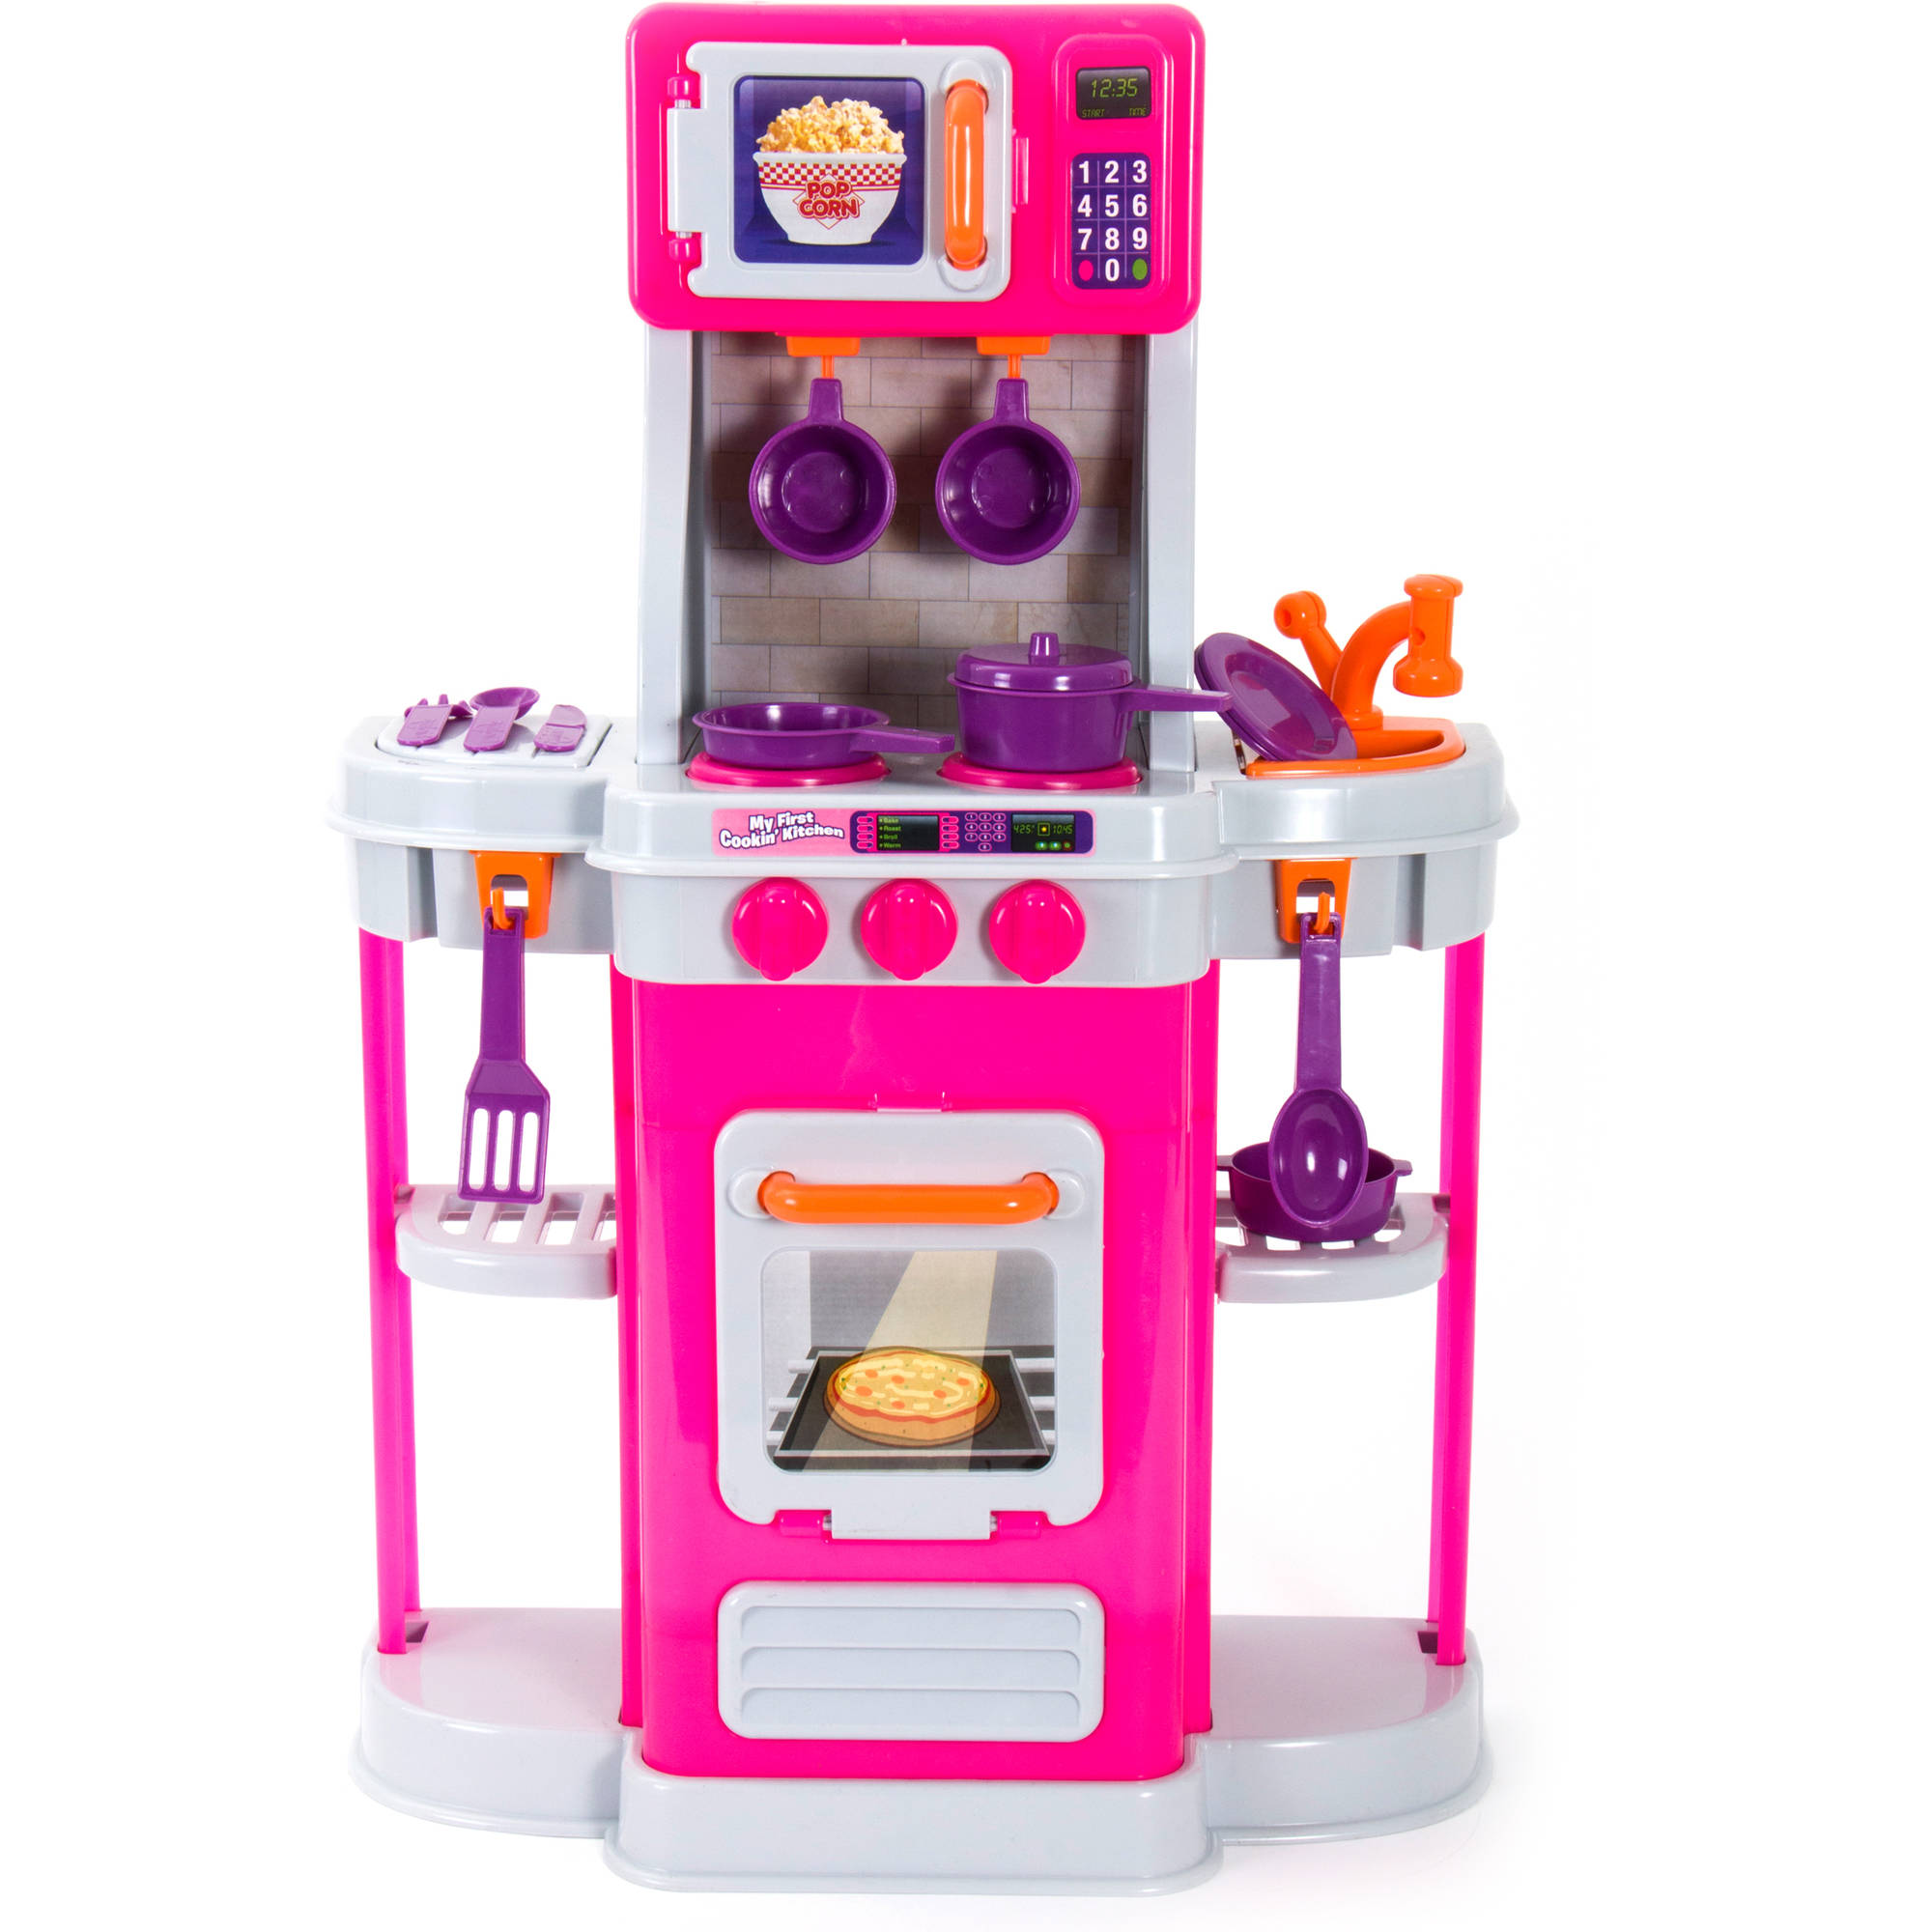 Spark Kitchen Play Set 18pc Walmart Com